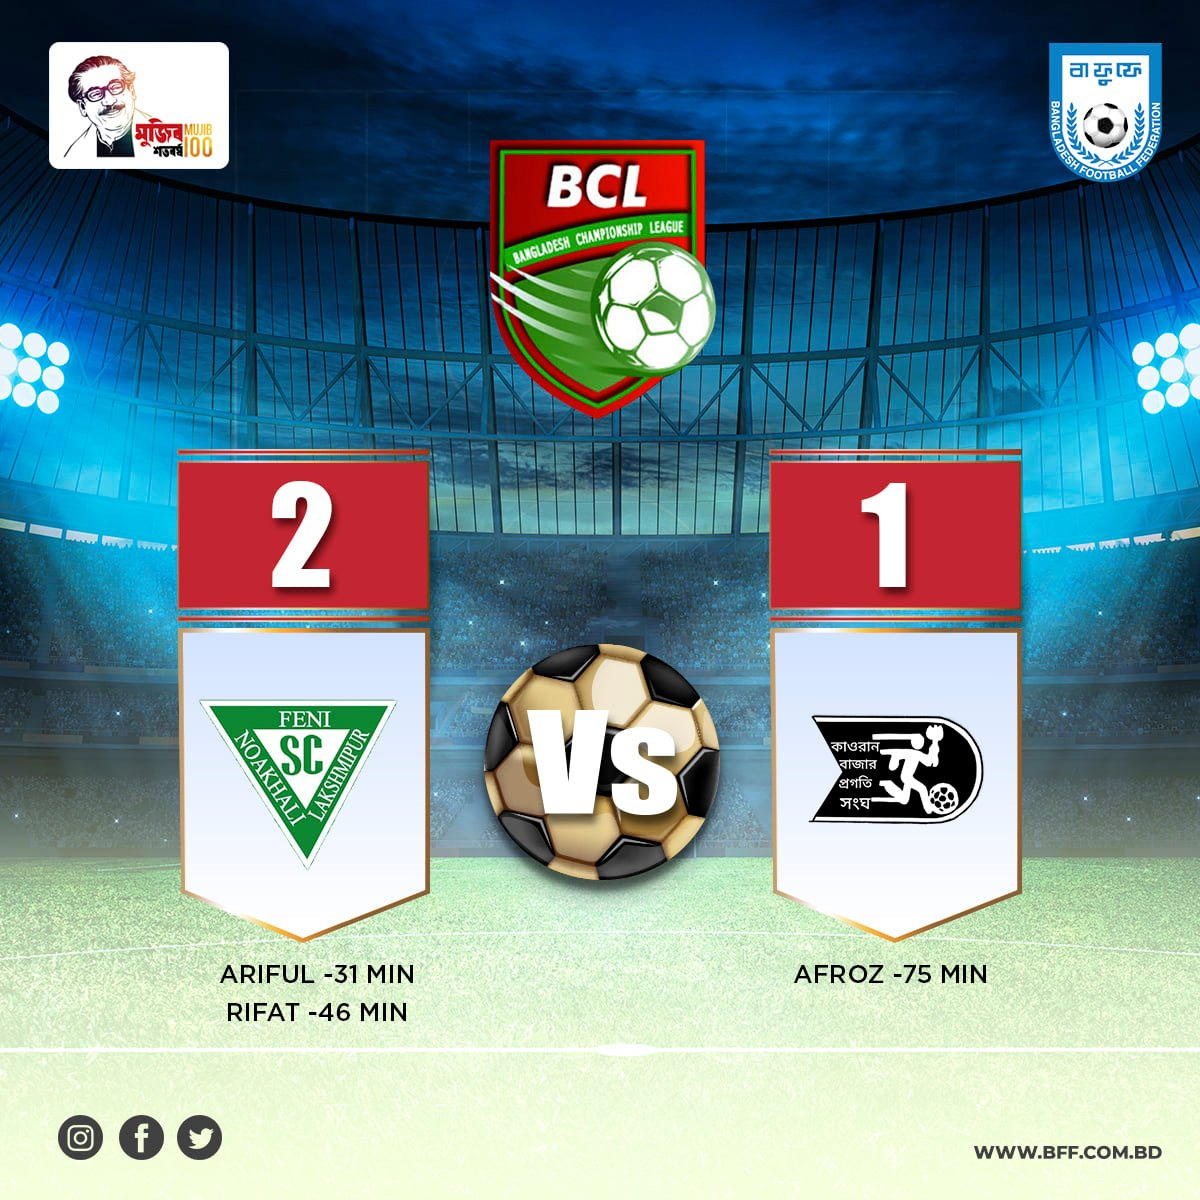 NoFeL Sporting Club defeated Kawran Bazar Pragati Shangha by 2-1 goals.